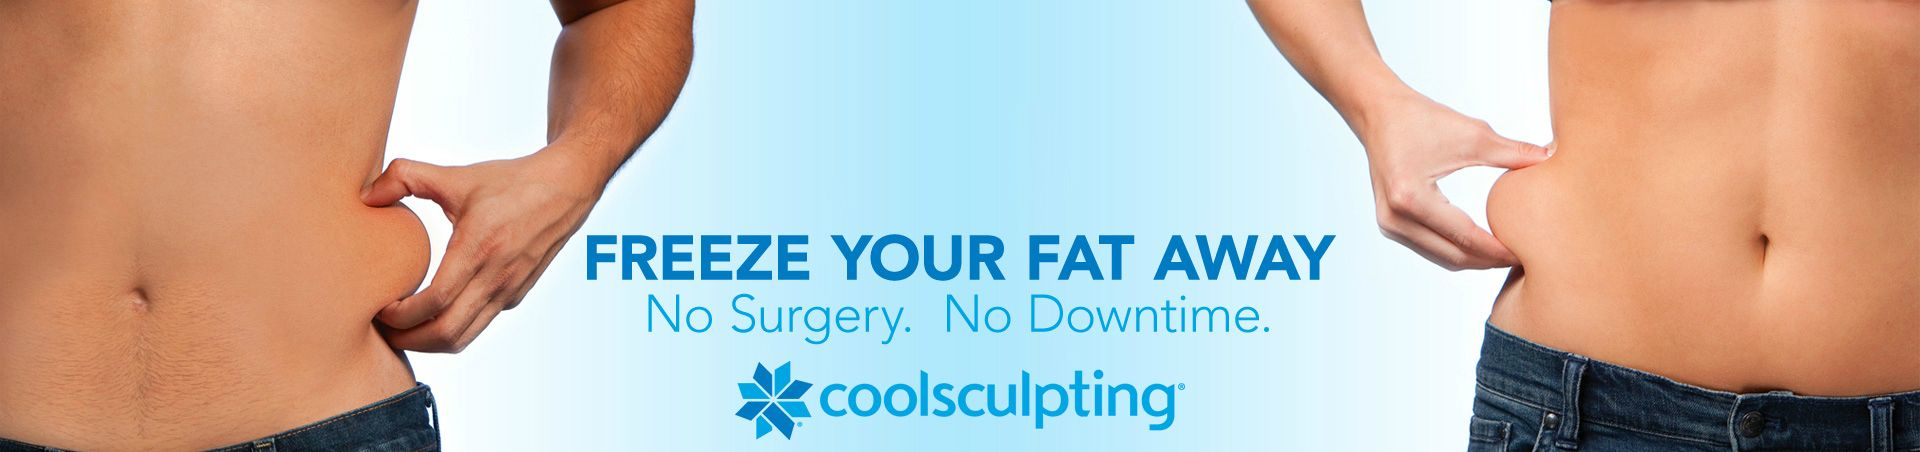 IMG 4 CoolSculpting